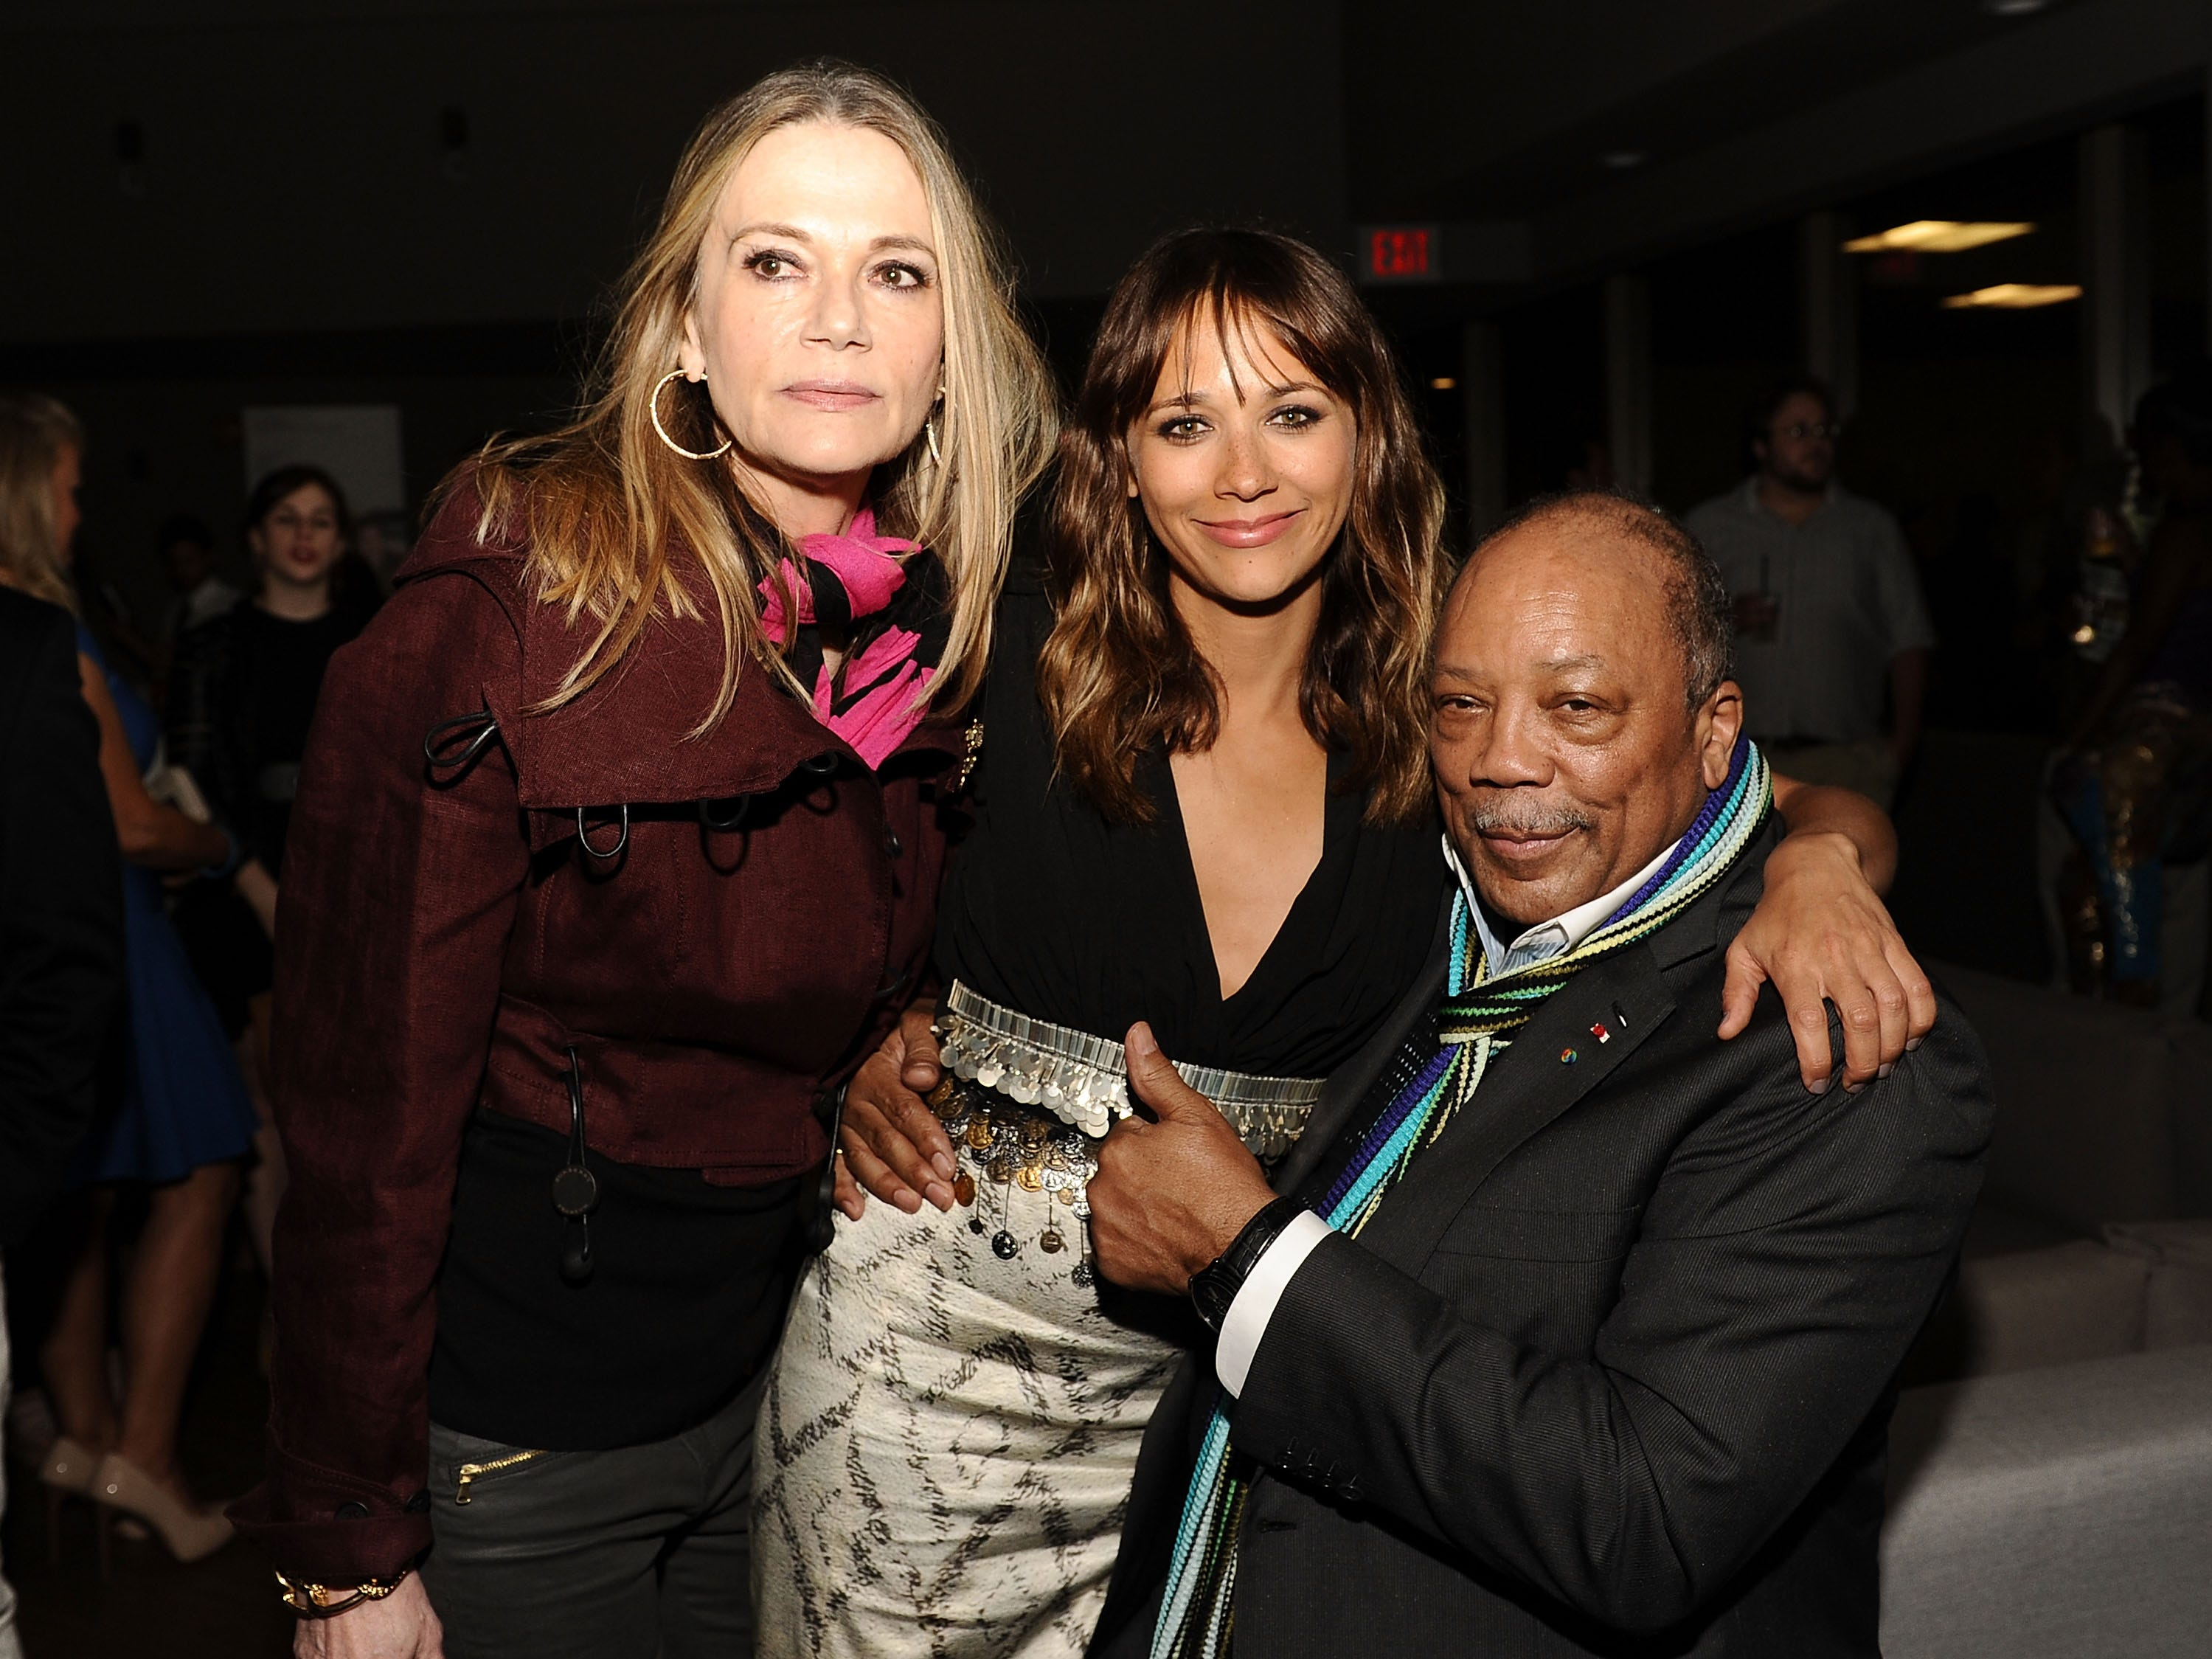 Peggy Lipton (from left), actress Rashida Jones and musician/producer Quincy Jones attend the after party for 'Celeste And Jesse Forever' at the 2012 Los Angeles Film Festival held at Luxe Hotel on June 21, 2012, in Los Angeles, California.